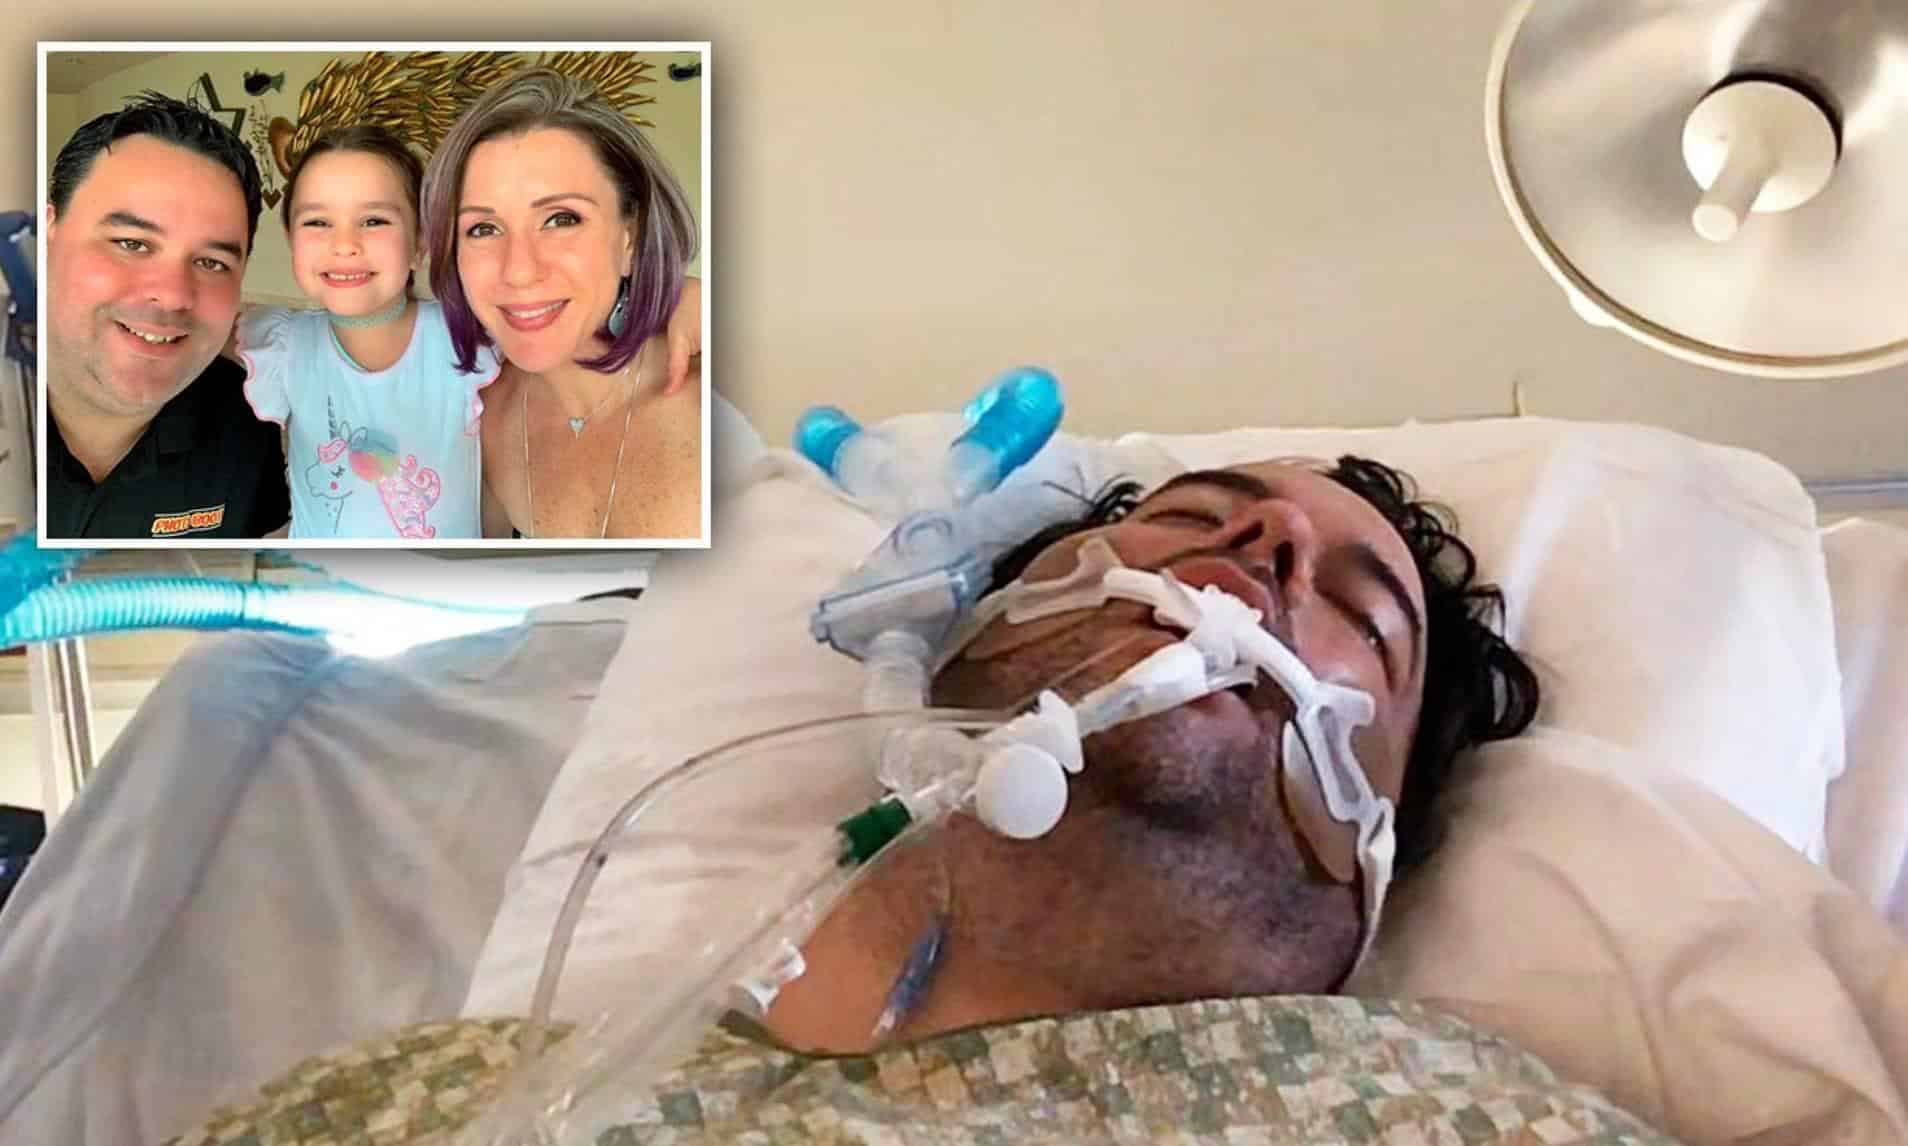 Florida Dad on Death Bed After Son Ignores Social Distancing and Gives COVID to ENTIRE Family